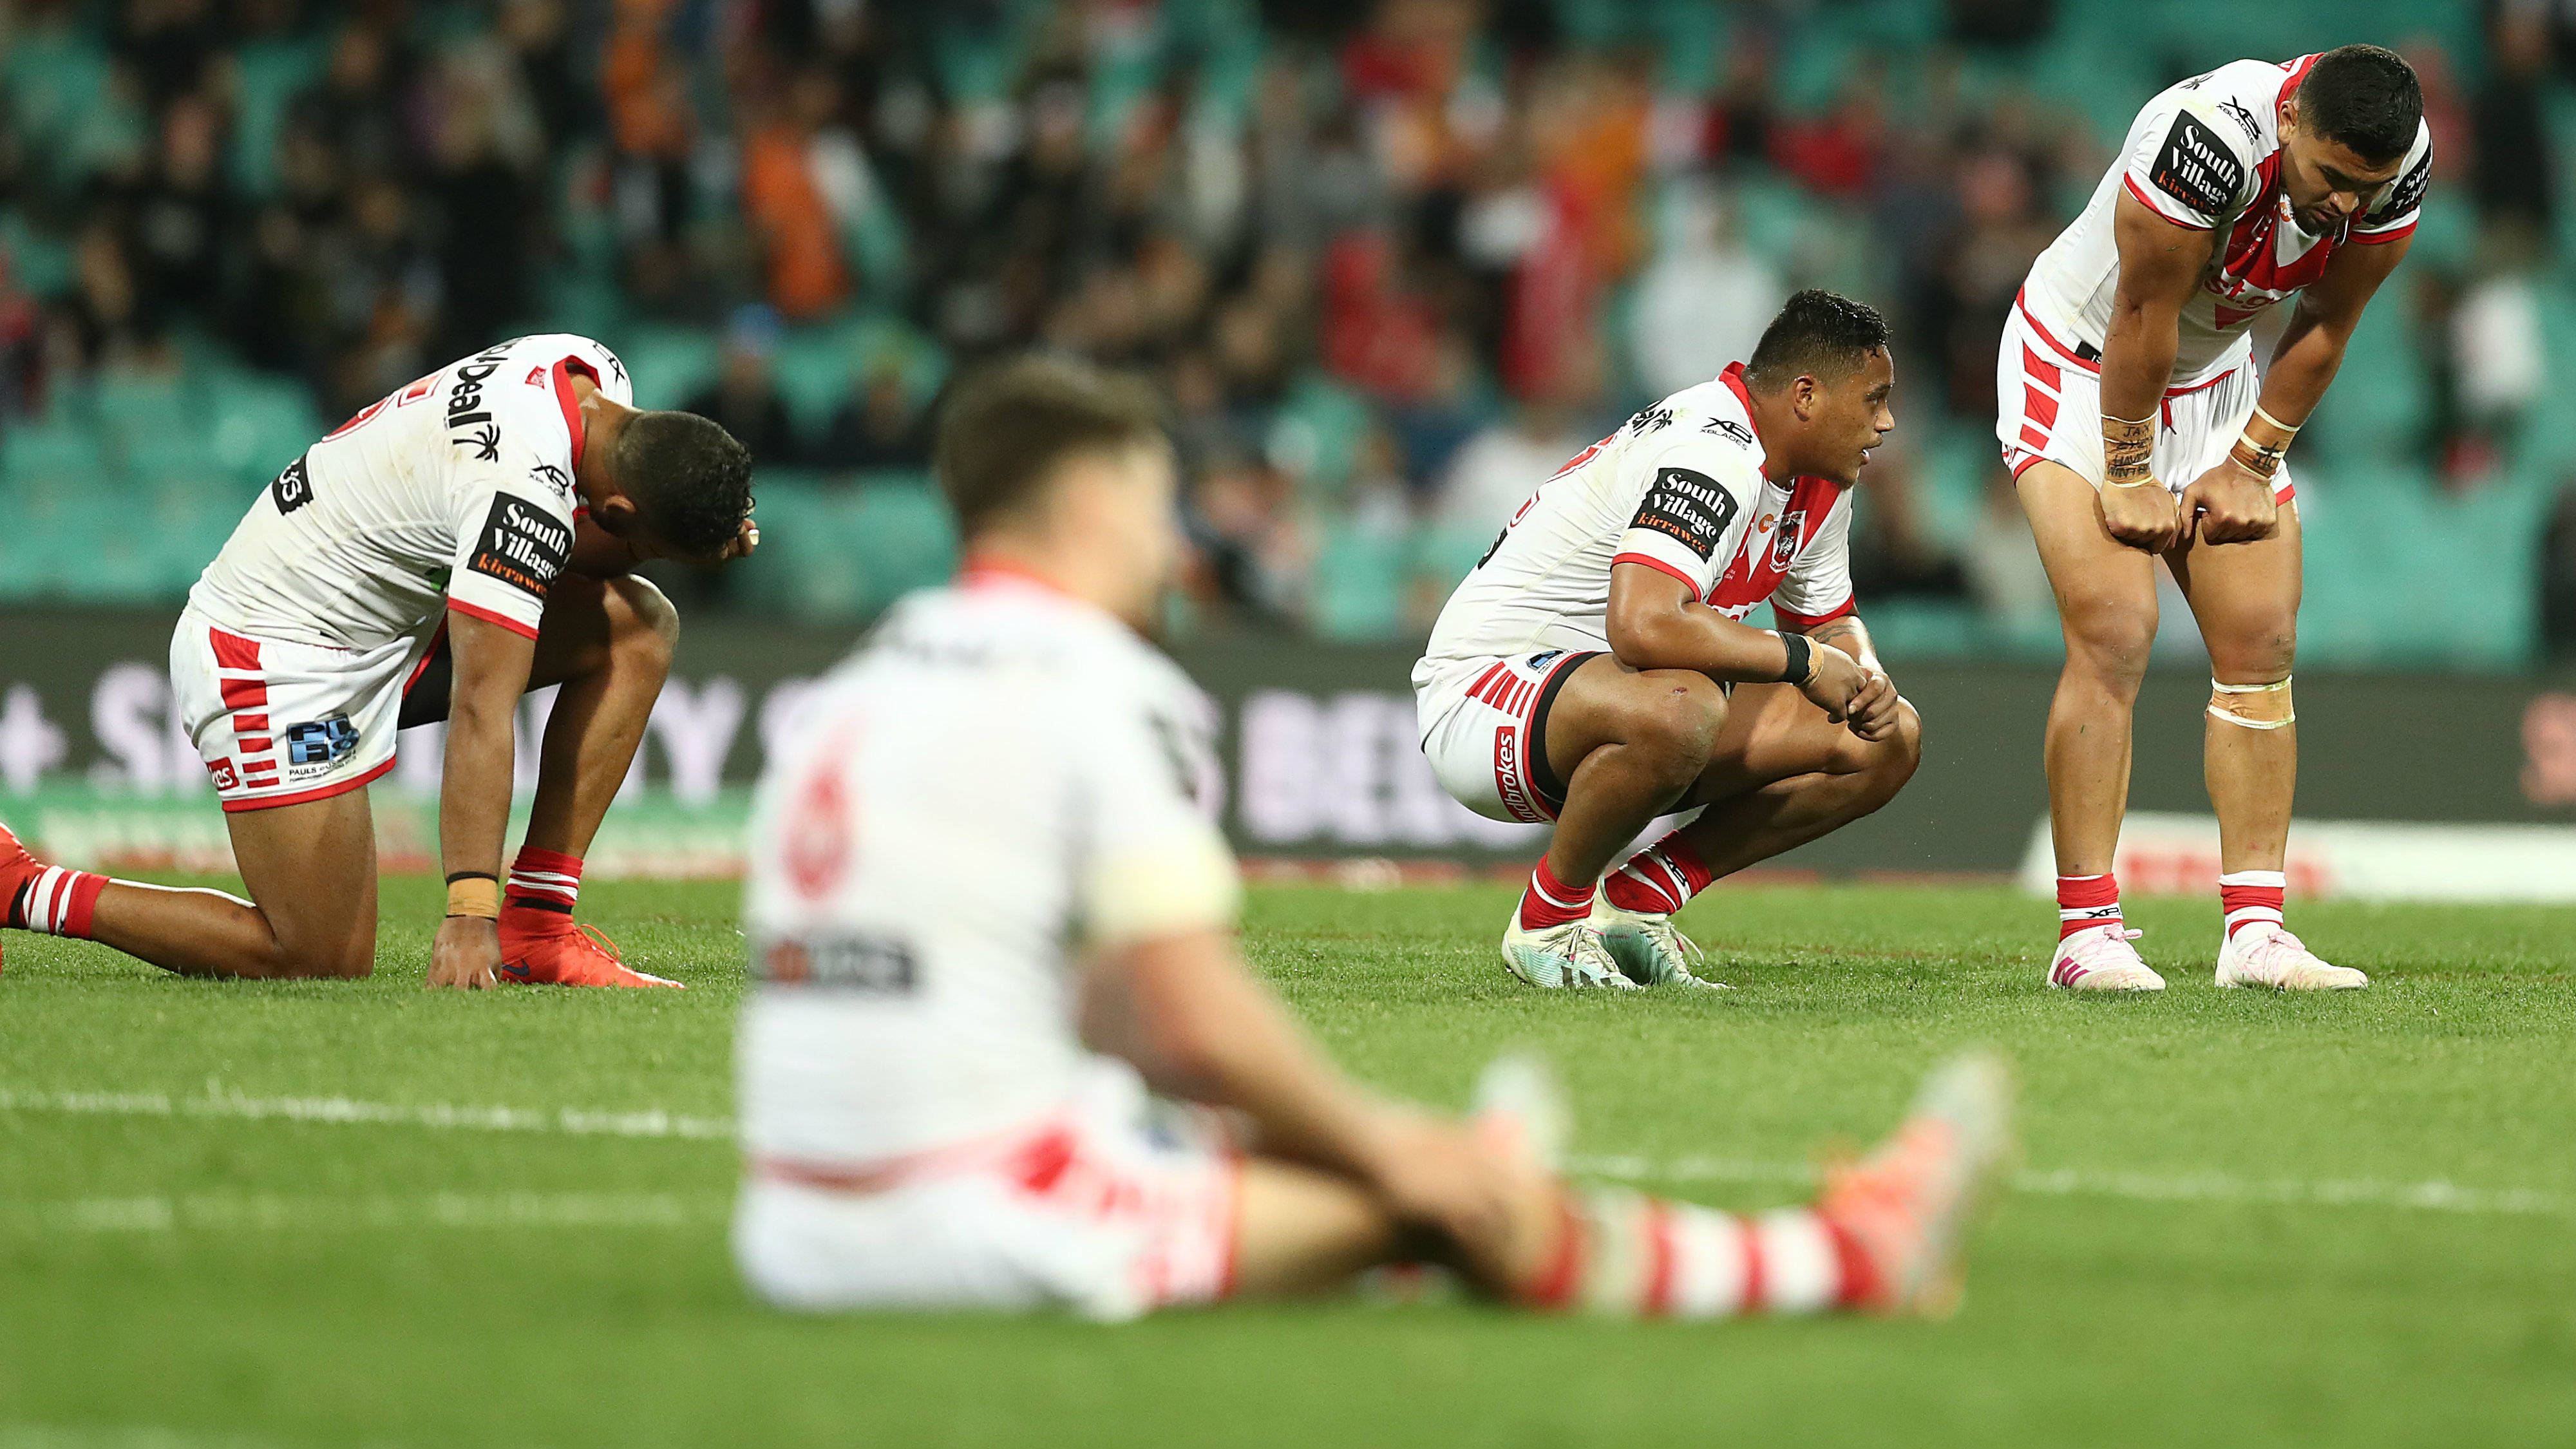 Andrew Johns and Brad Fittler weigh in on struggling St George Illawarra Dragons ahead of Phil Gould review